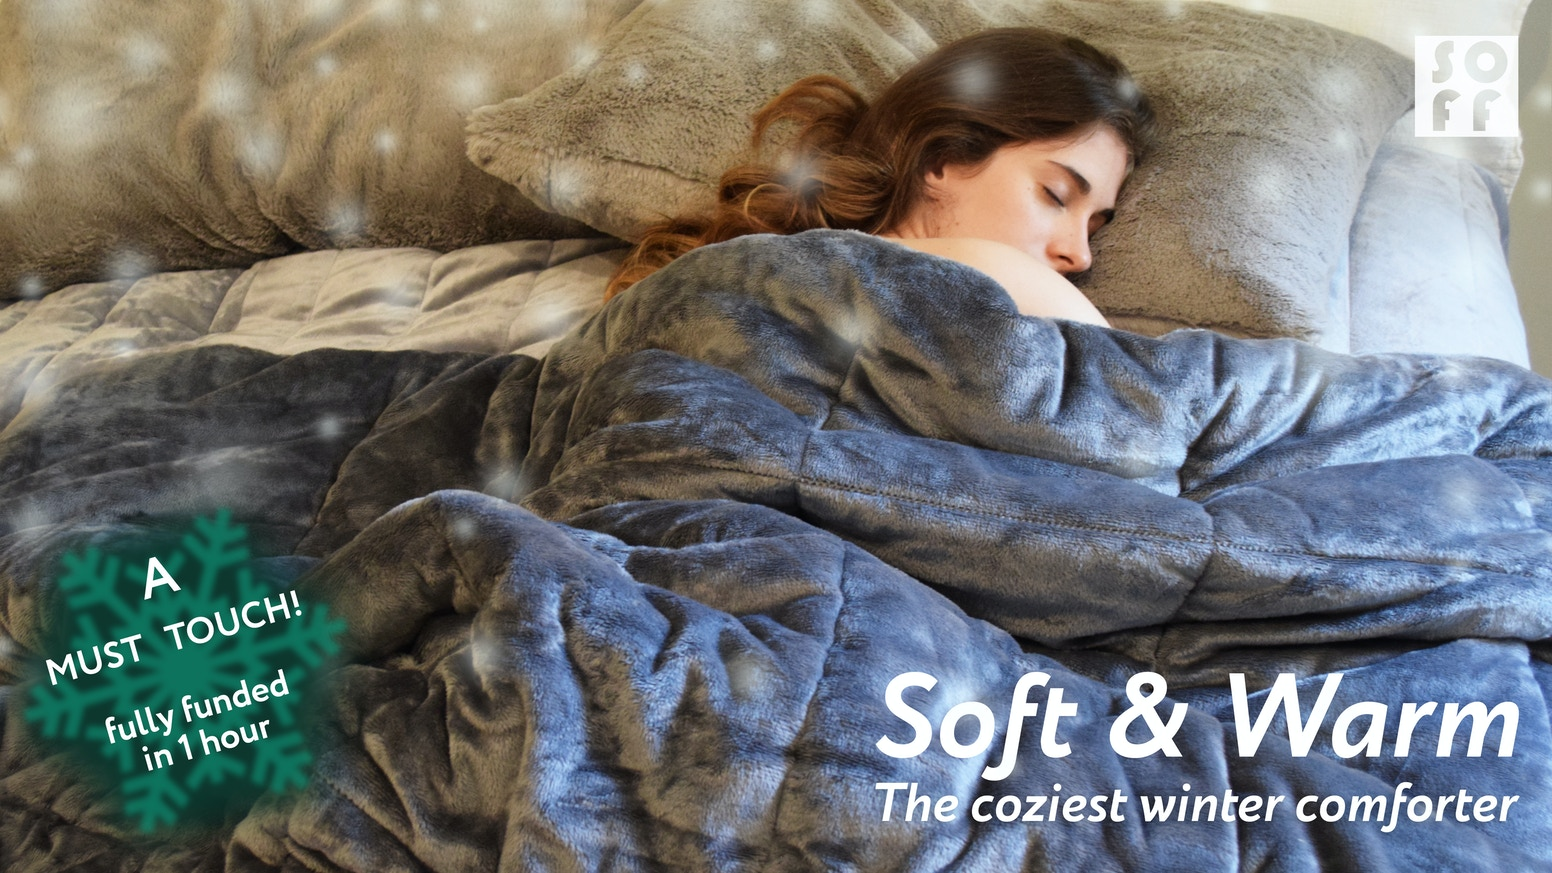 Winter is Coming! Fall in Love with your Ultra-soft SOFF Comforter this winter!